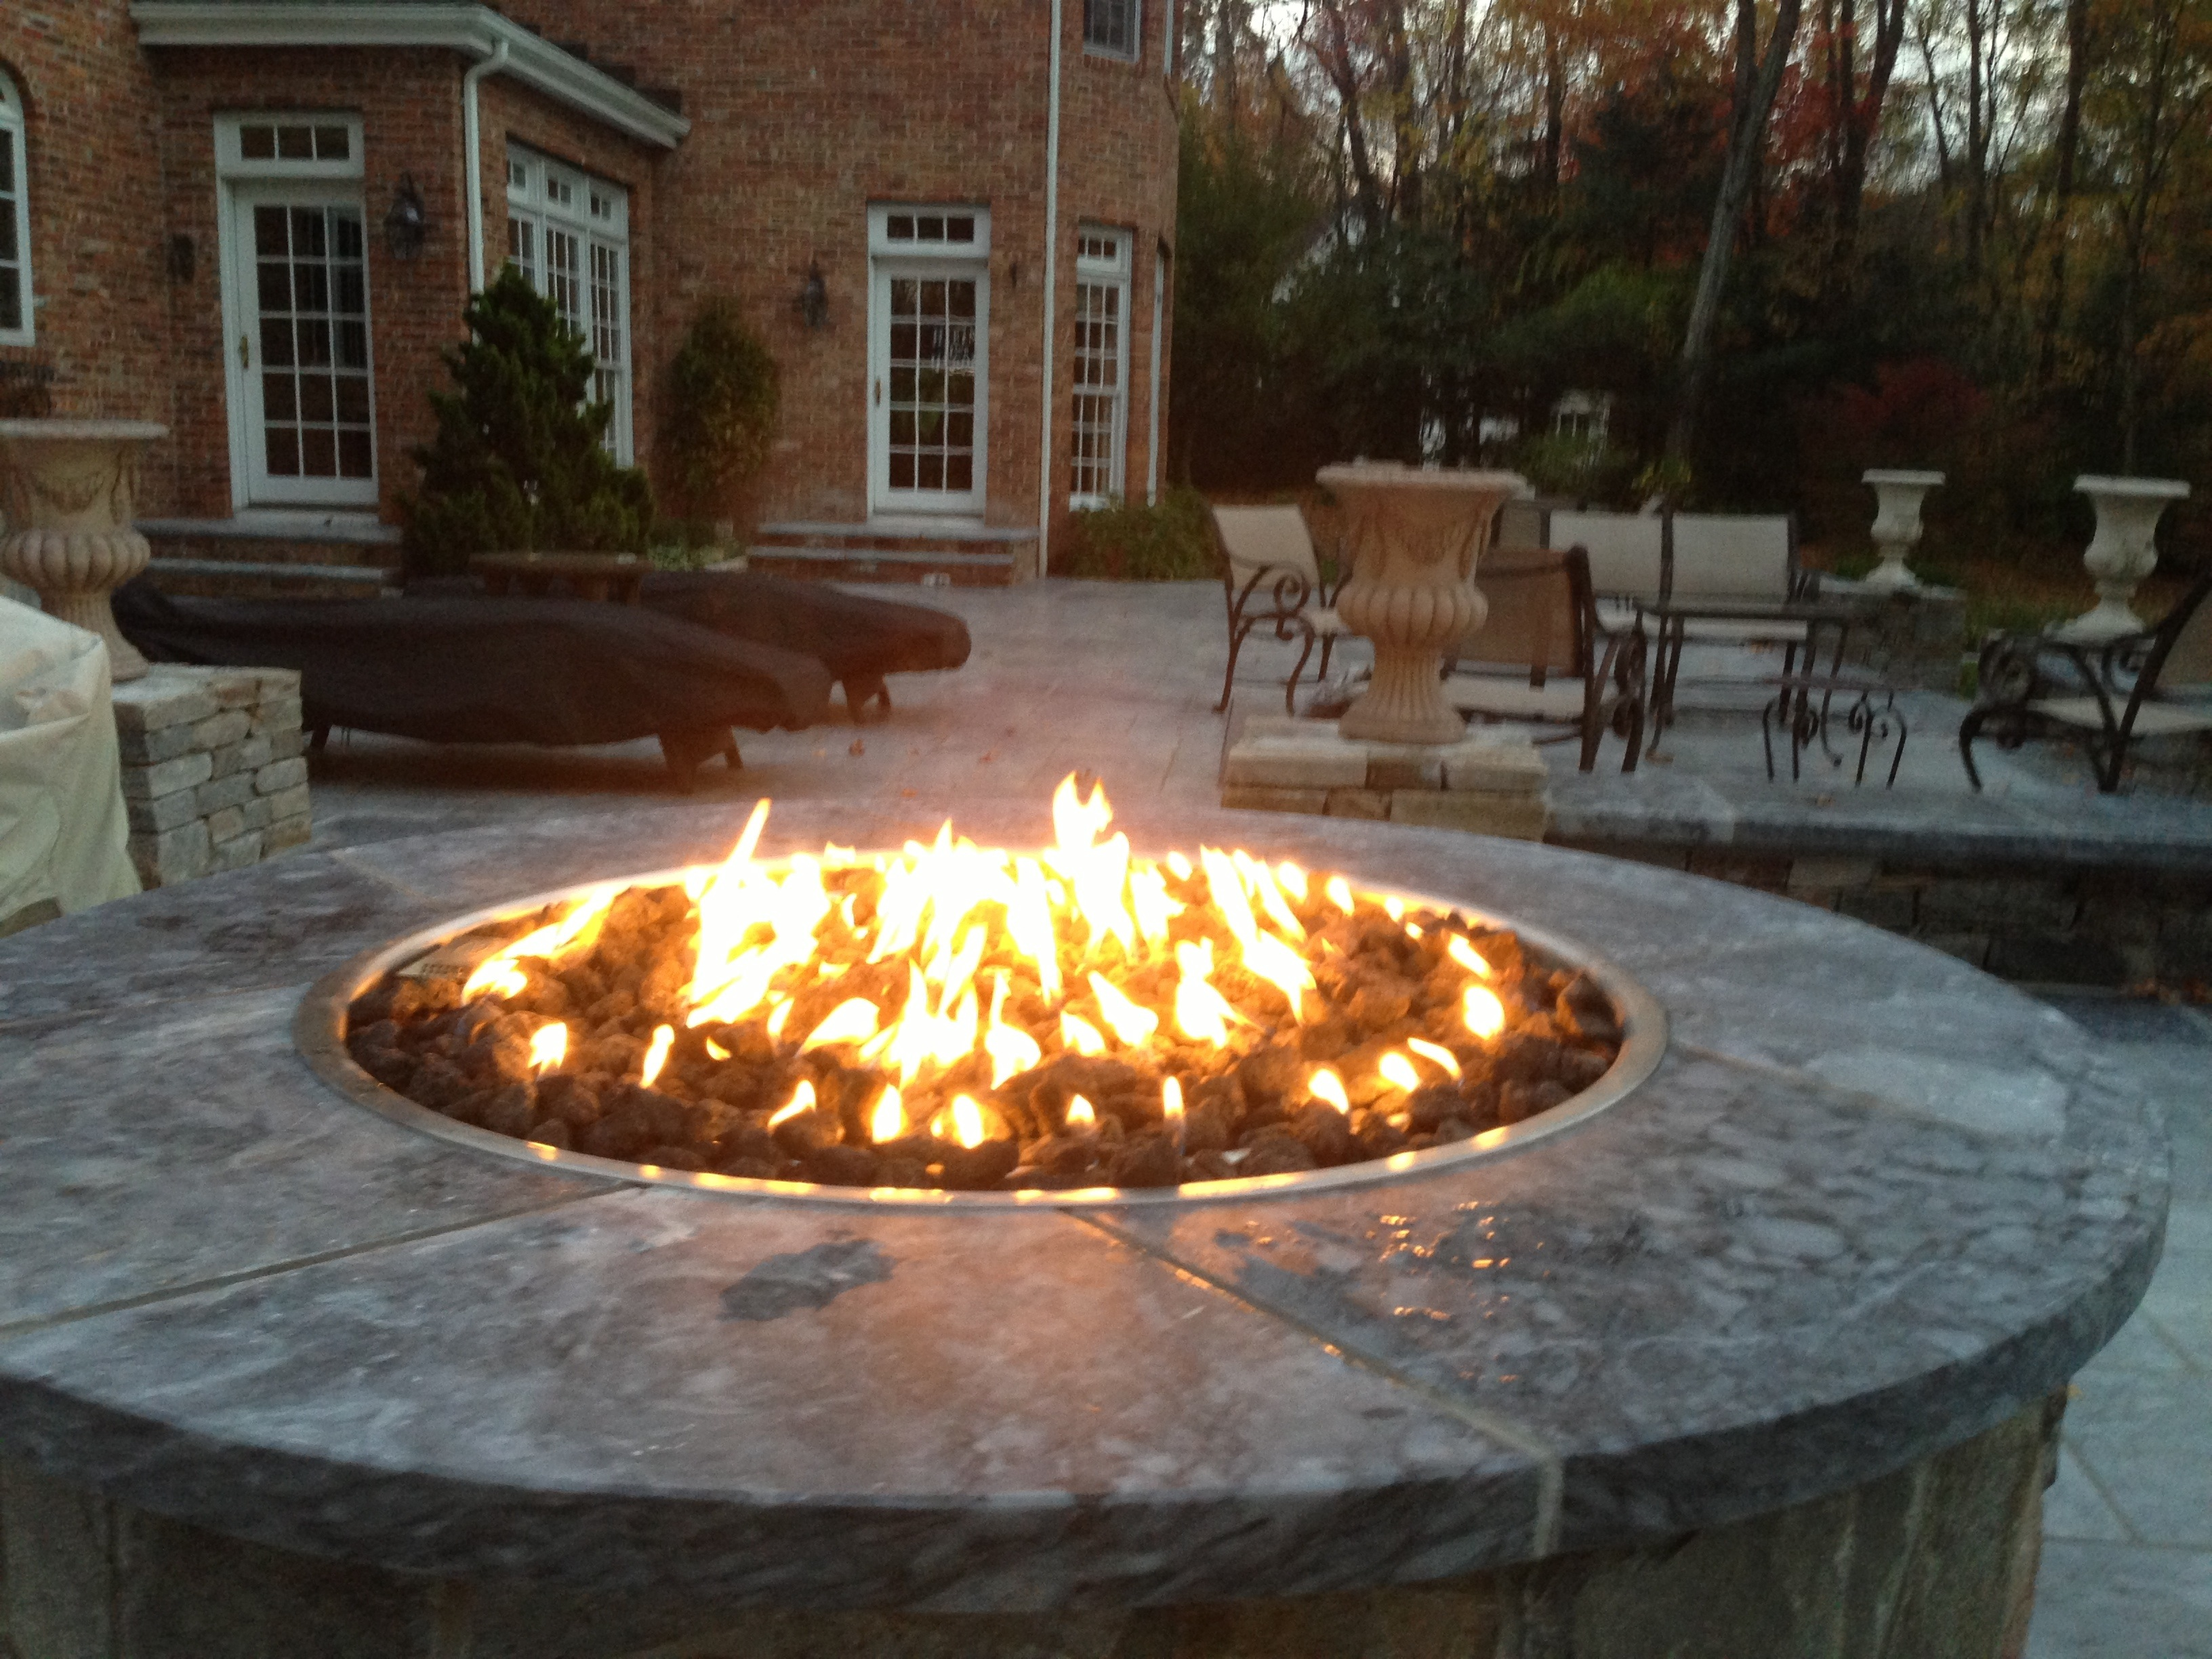 Hamptons Home: Choosing the perfect fire feature for your ...